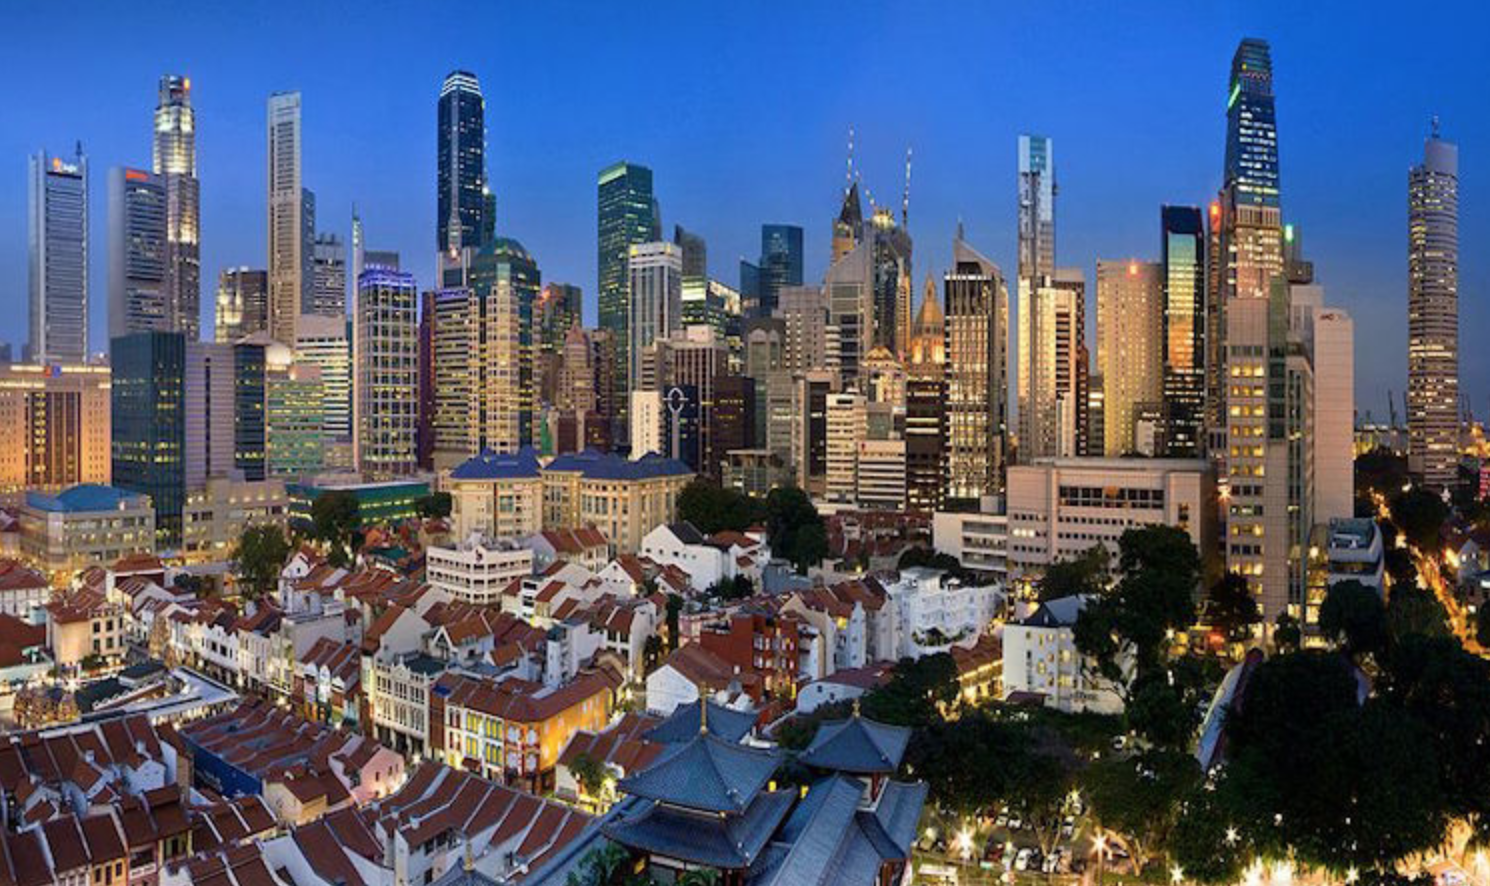 Singapore to Beijing - Sip Slings and experience the astounding history and culture on board some of the most luxurious ships.